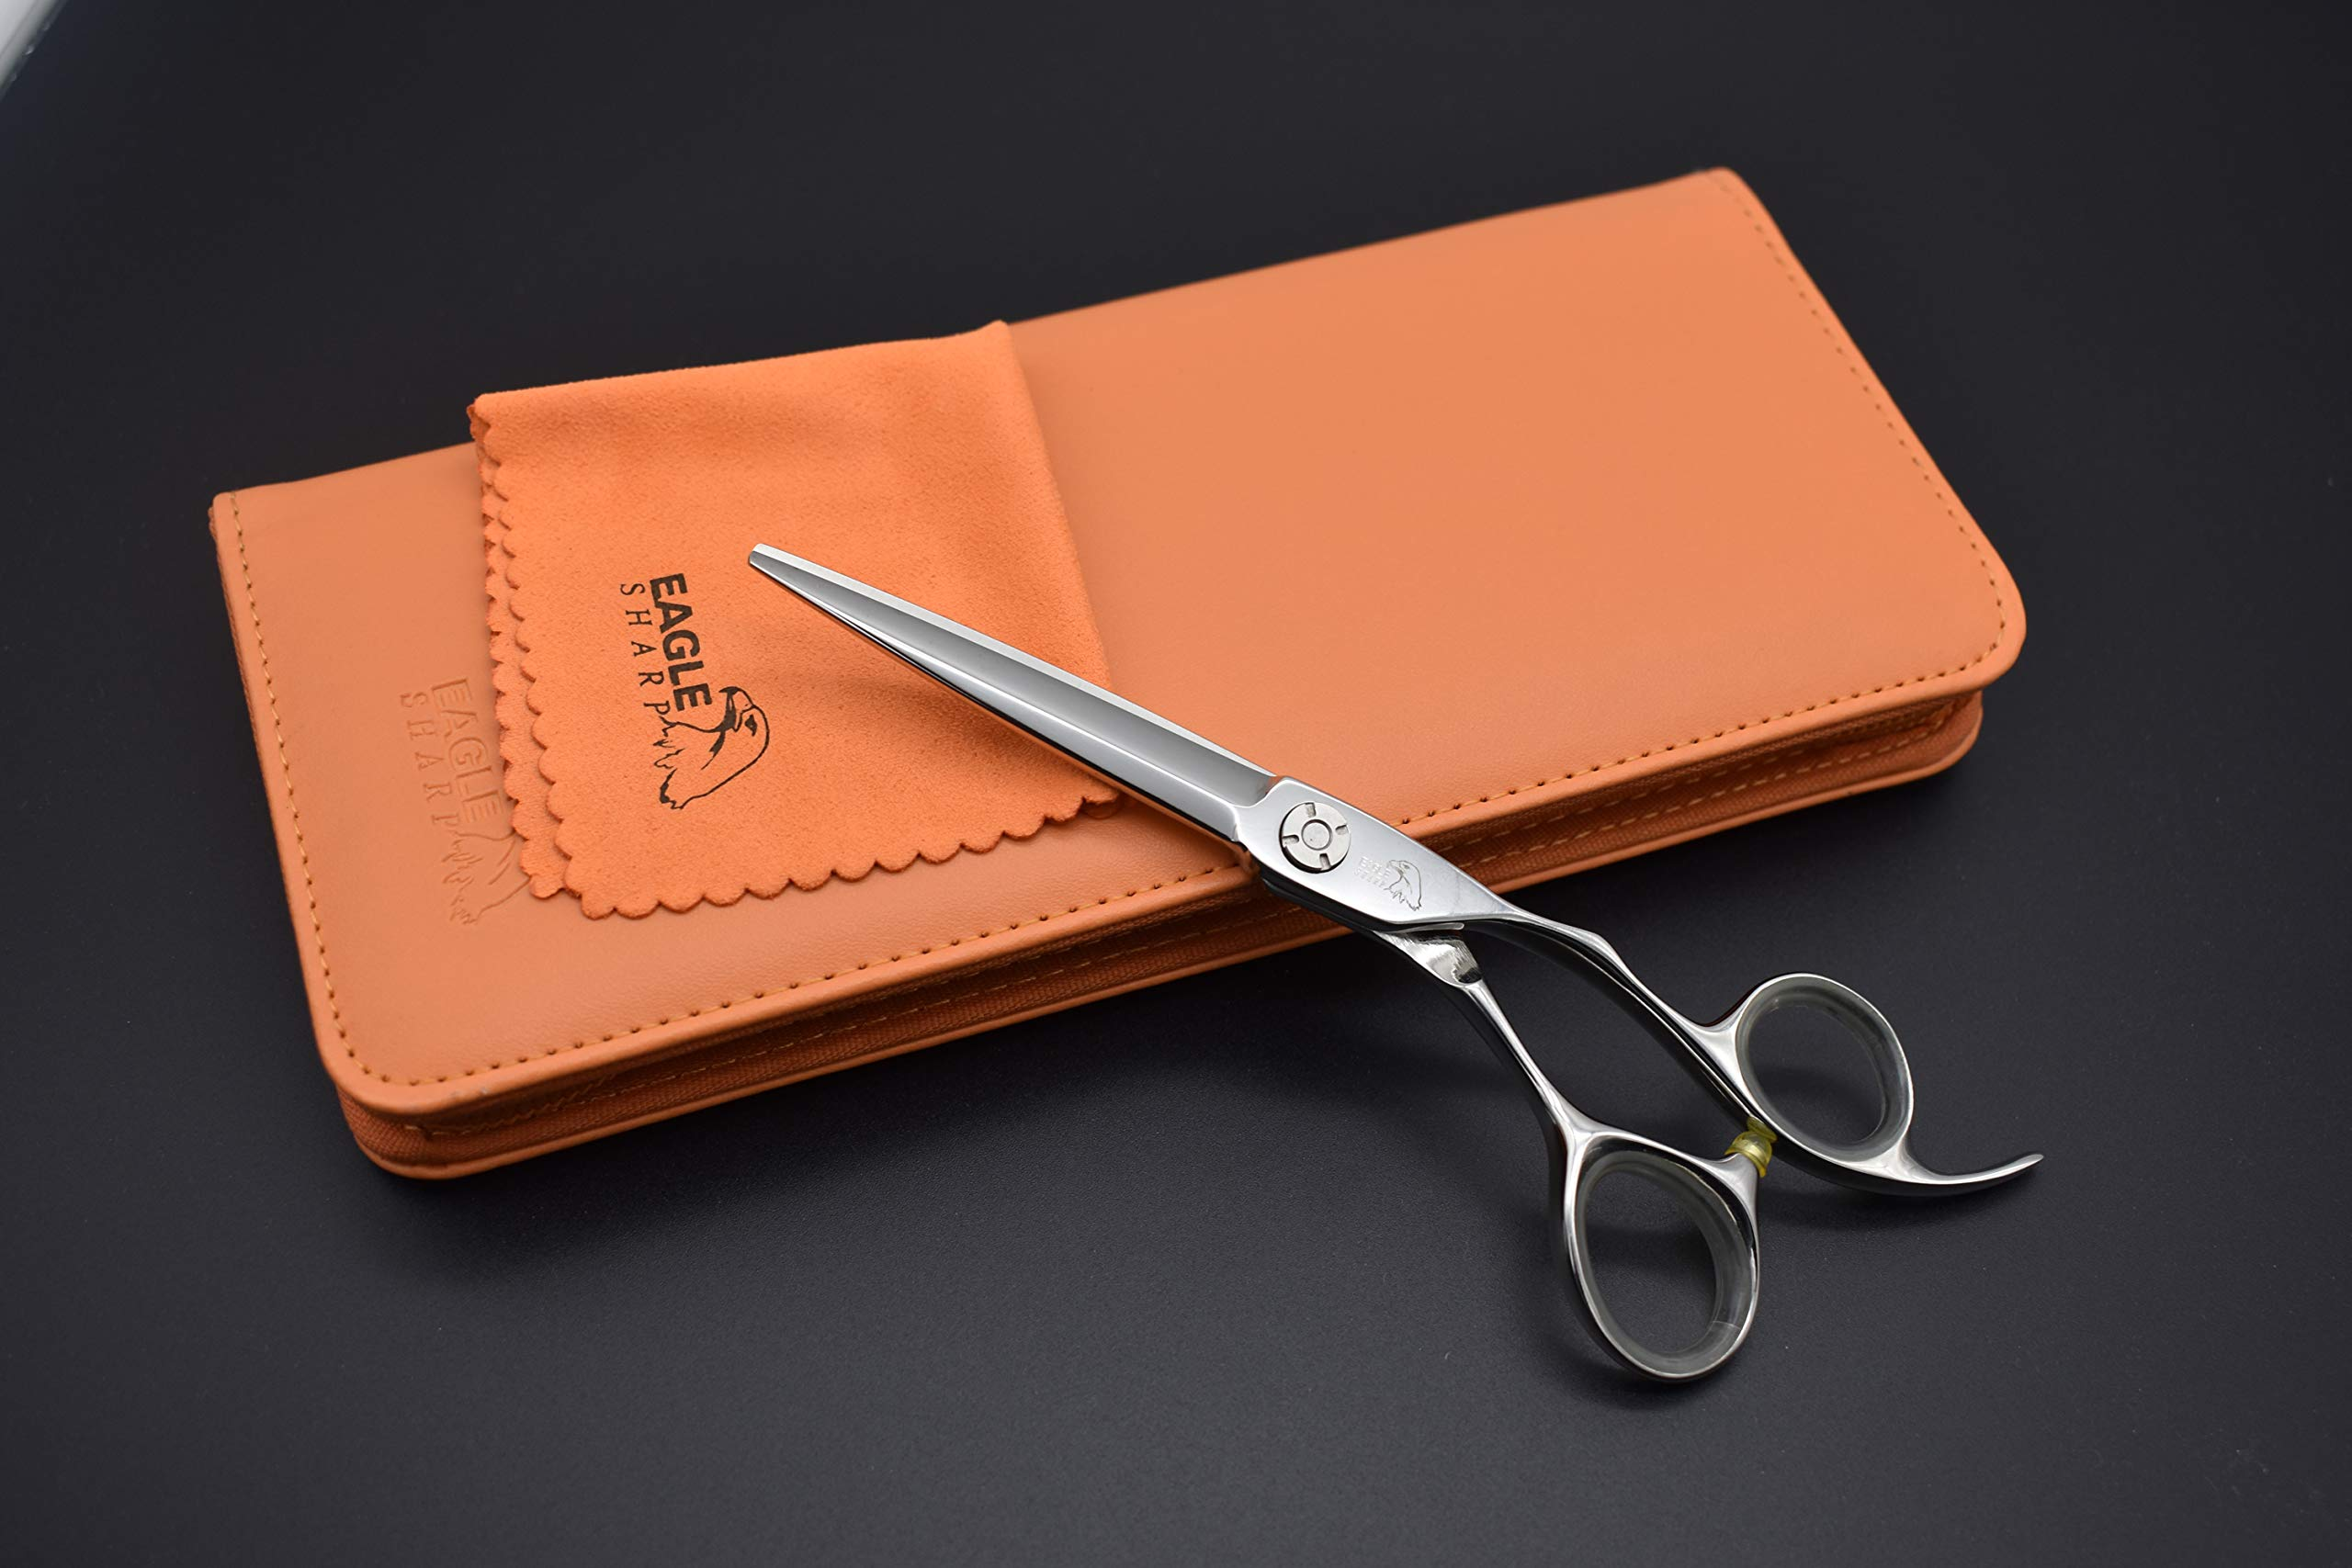 Professional Hair Scissors/Shears 6.5 inch For Barber/Hairdresser Cutting/Hairdressing Hair Convex Edge Blade Japanese Steel Shears 440c Forged (6.5'' Cutting) by EAGLE SHARP (Image #5)